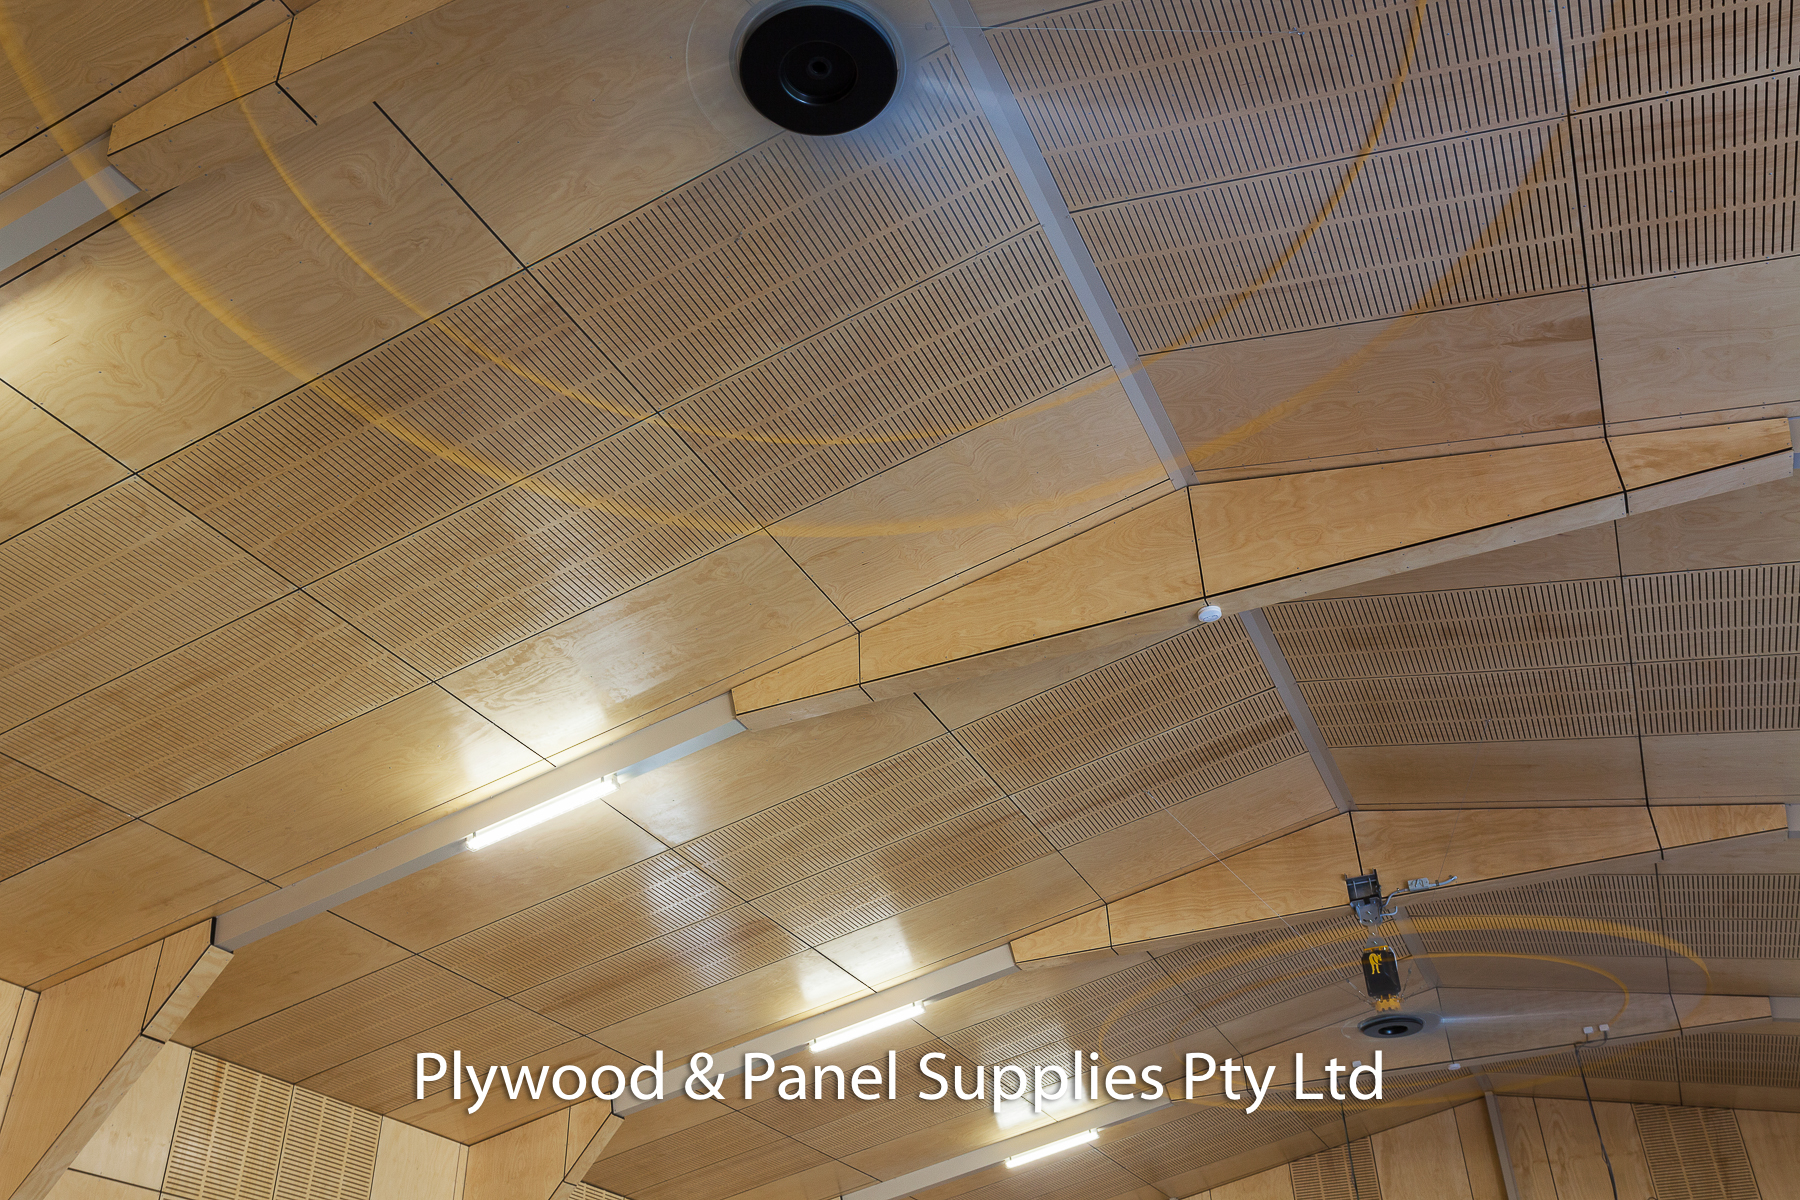 Austral Plywood - Plywood & Panel Supplies Pty Ltd